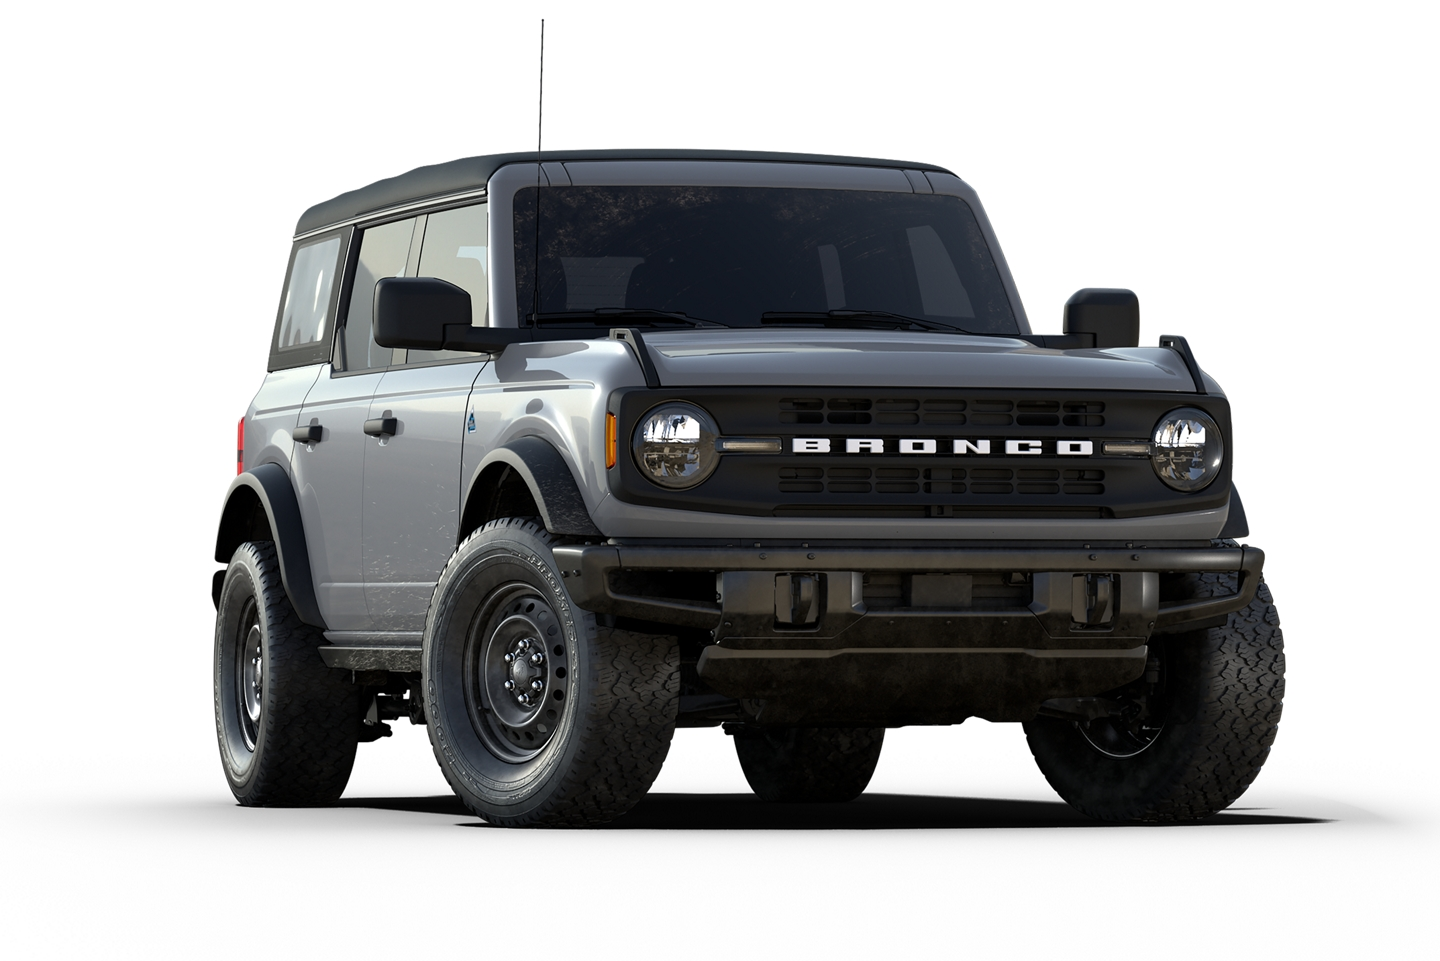 Modelo Ford Bronco Black Diamond 2021